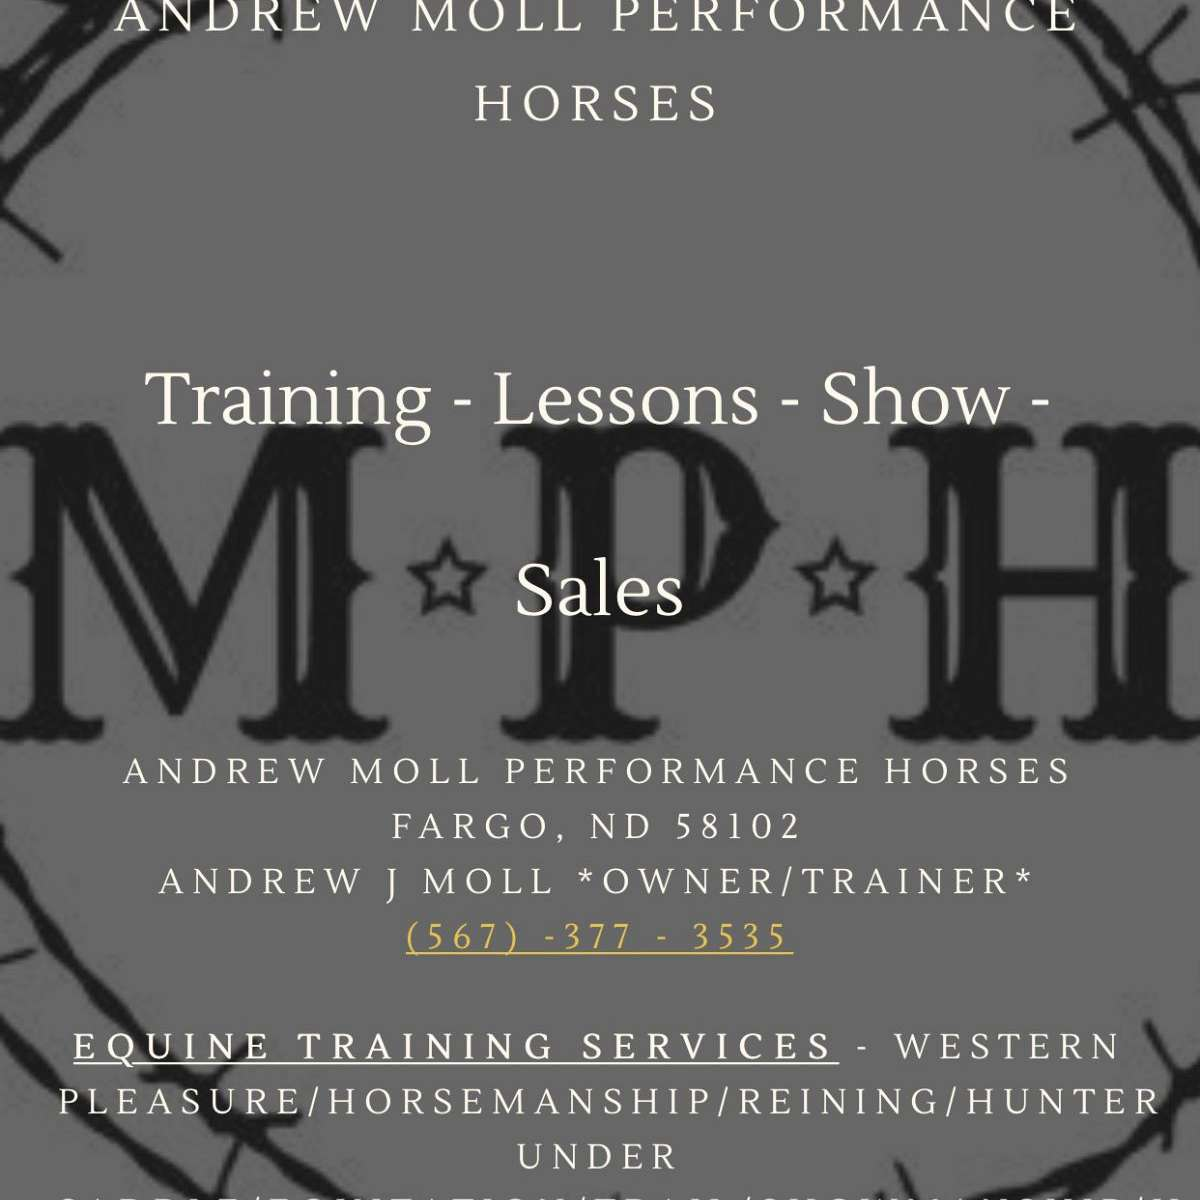 Andrew Moll Performance Horses